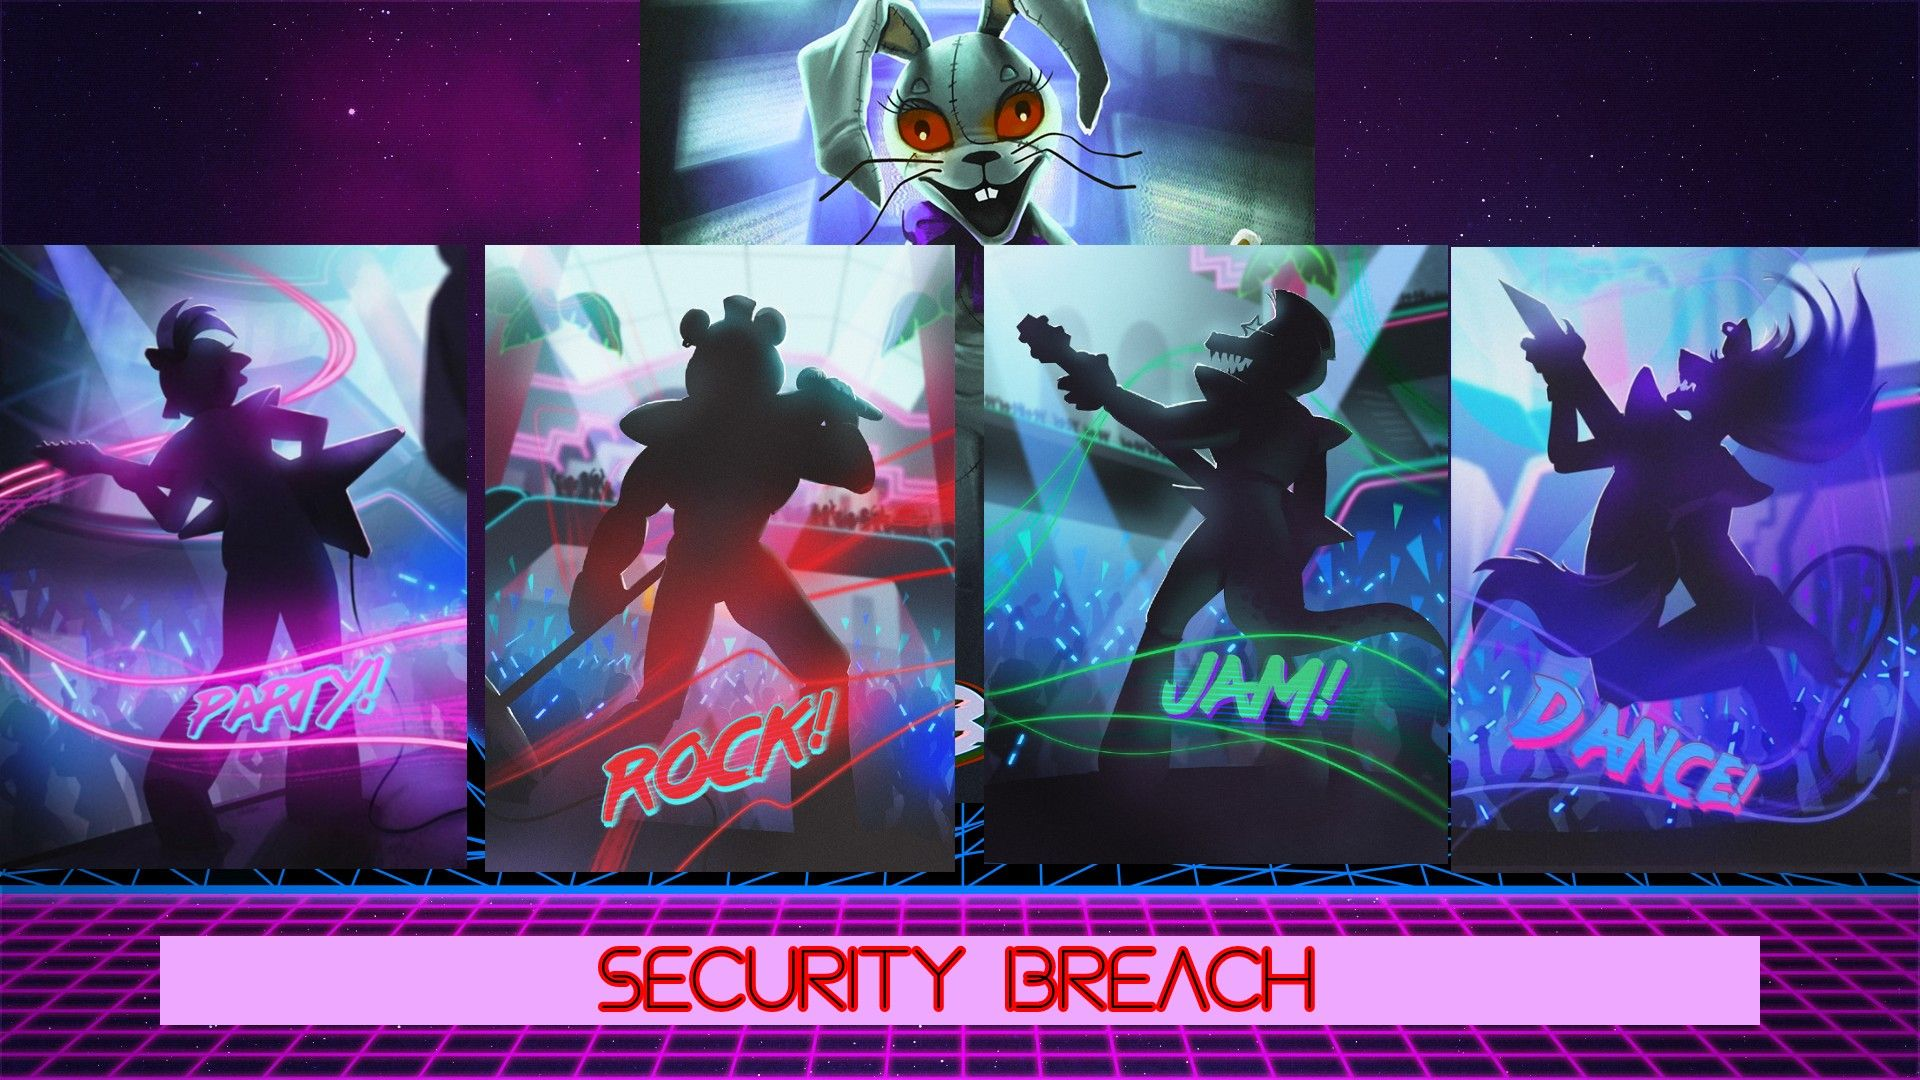 FNAF SECURITY BREACH | Fnaf, Freddy s, Five nights at freddy's